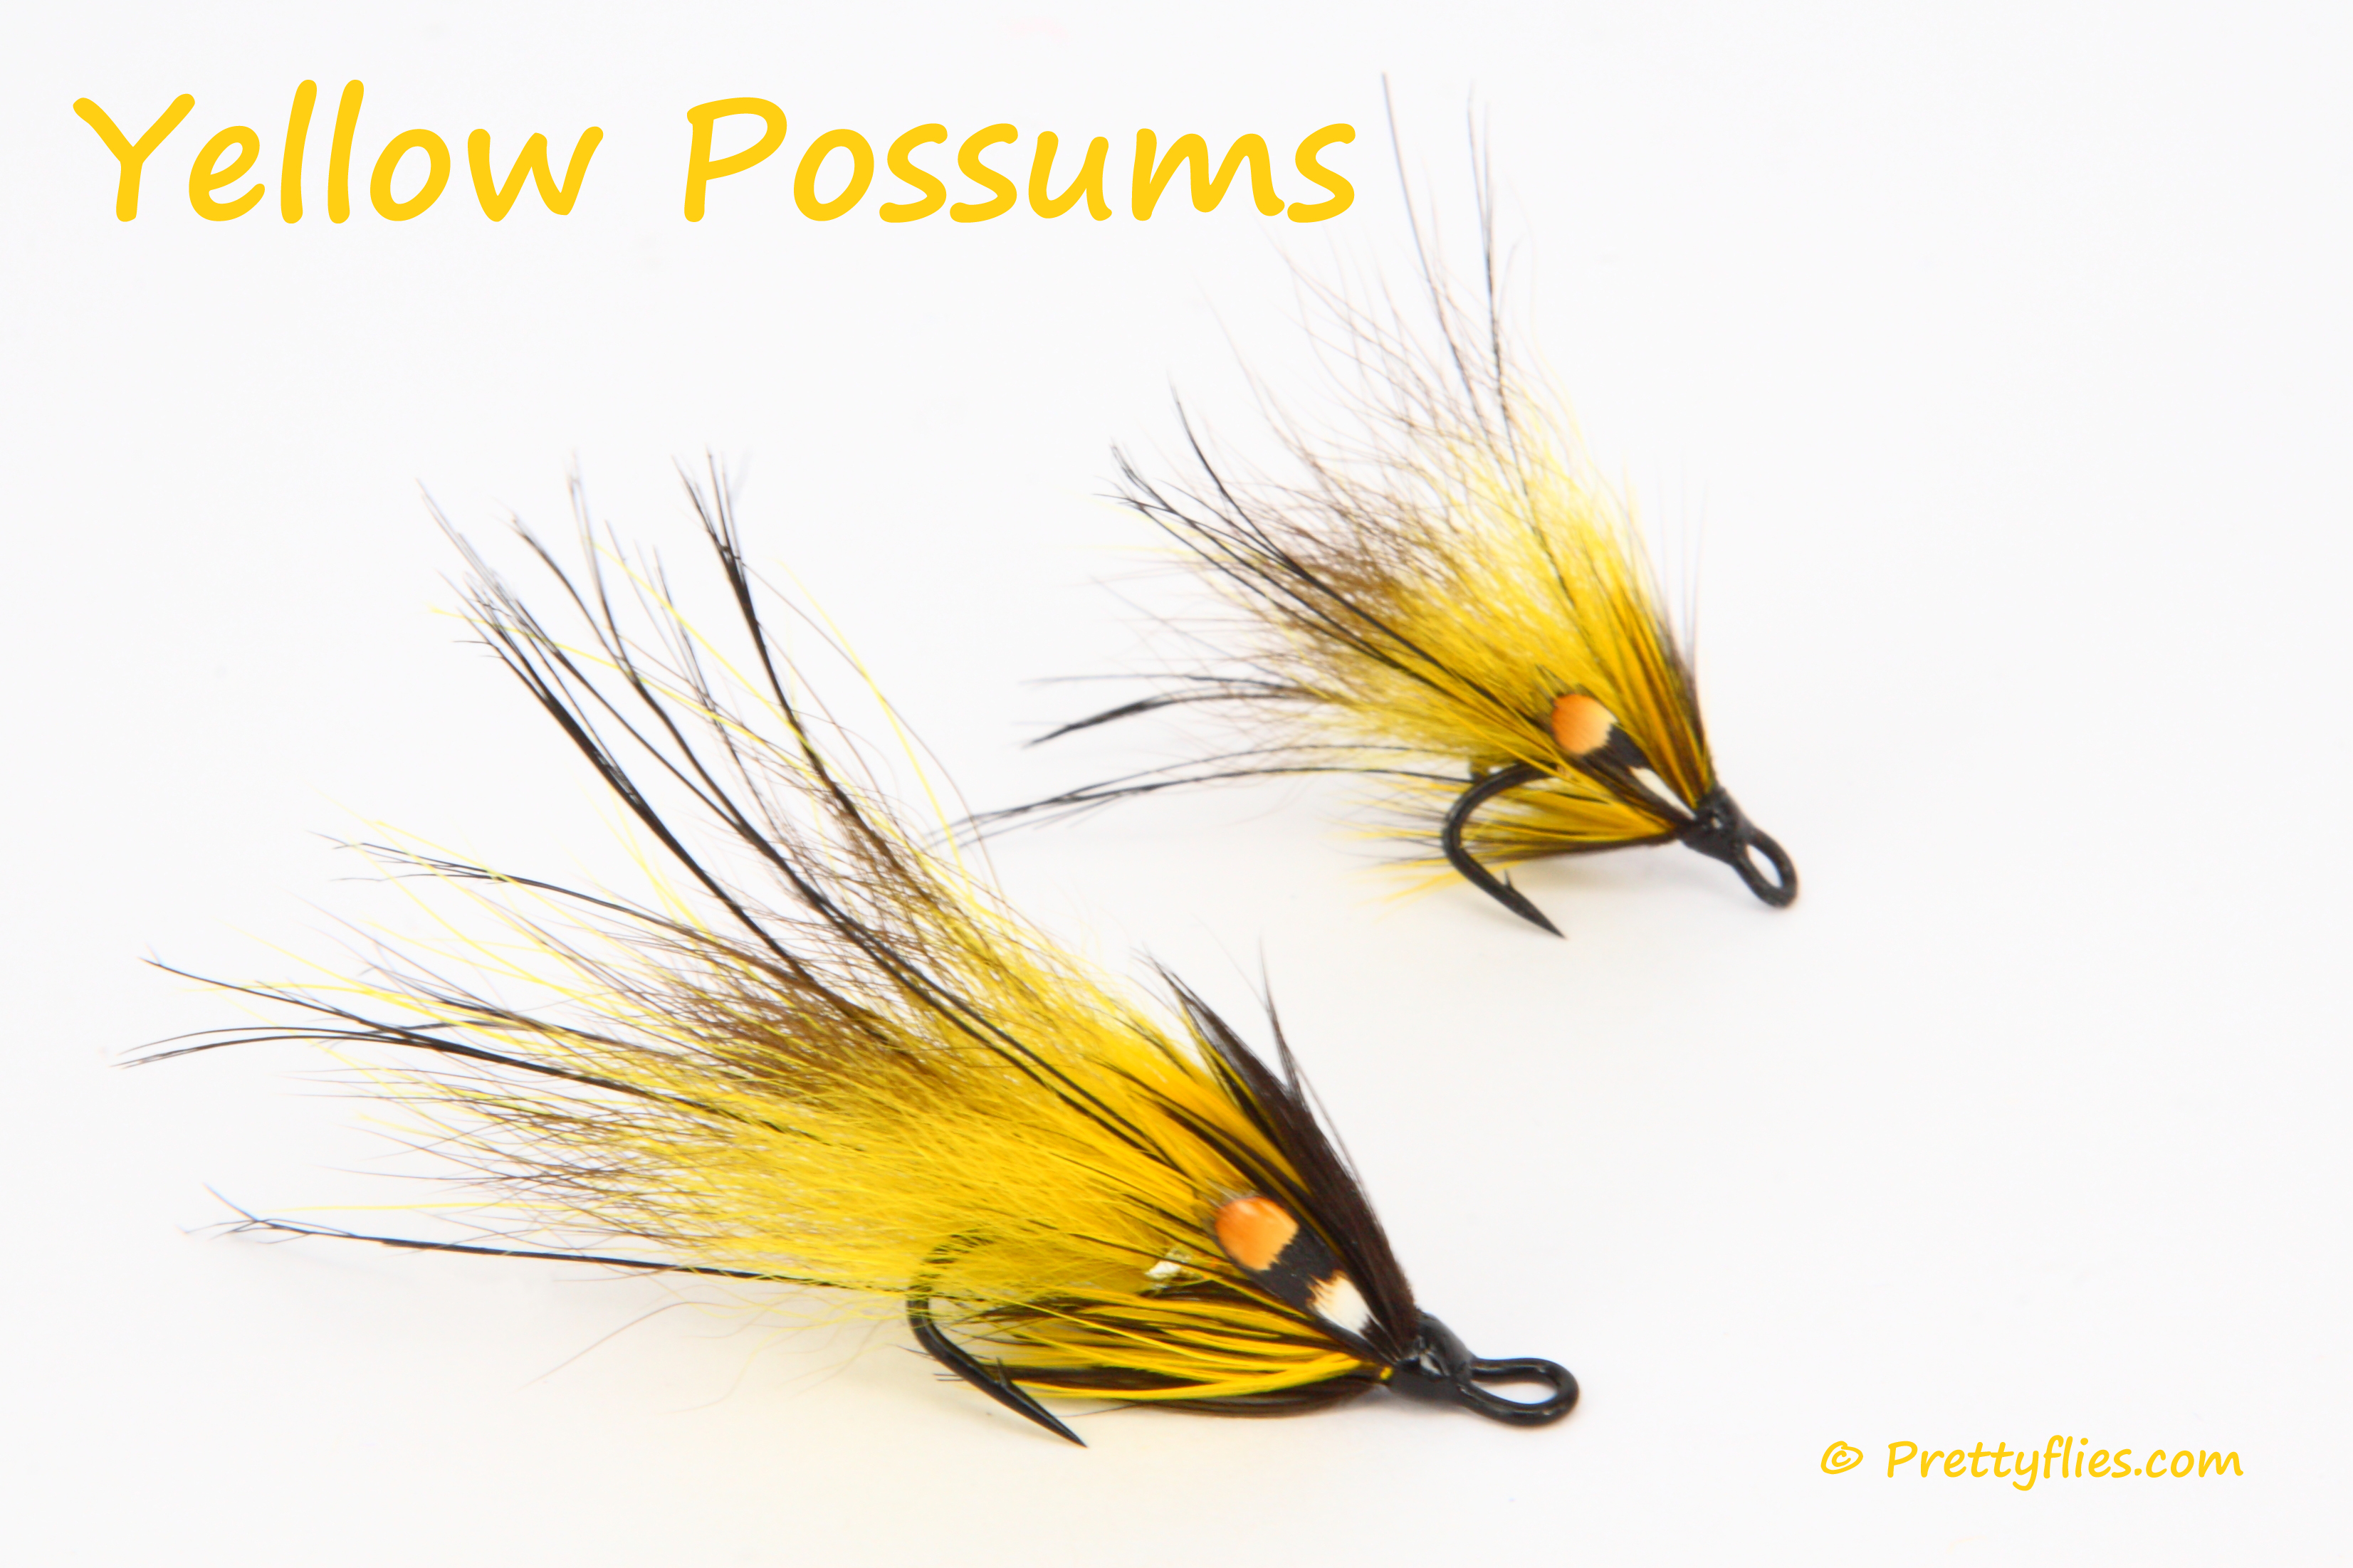 Yellow Possums copy.jpg